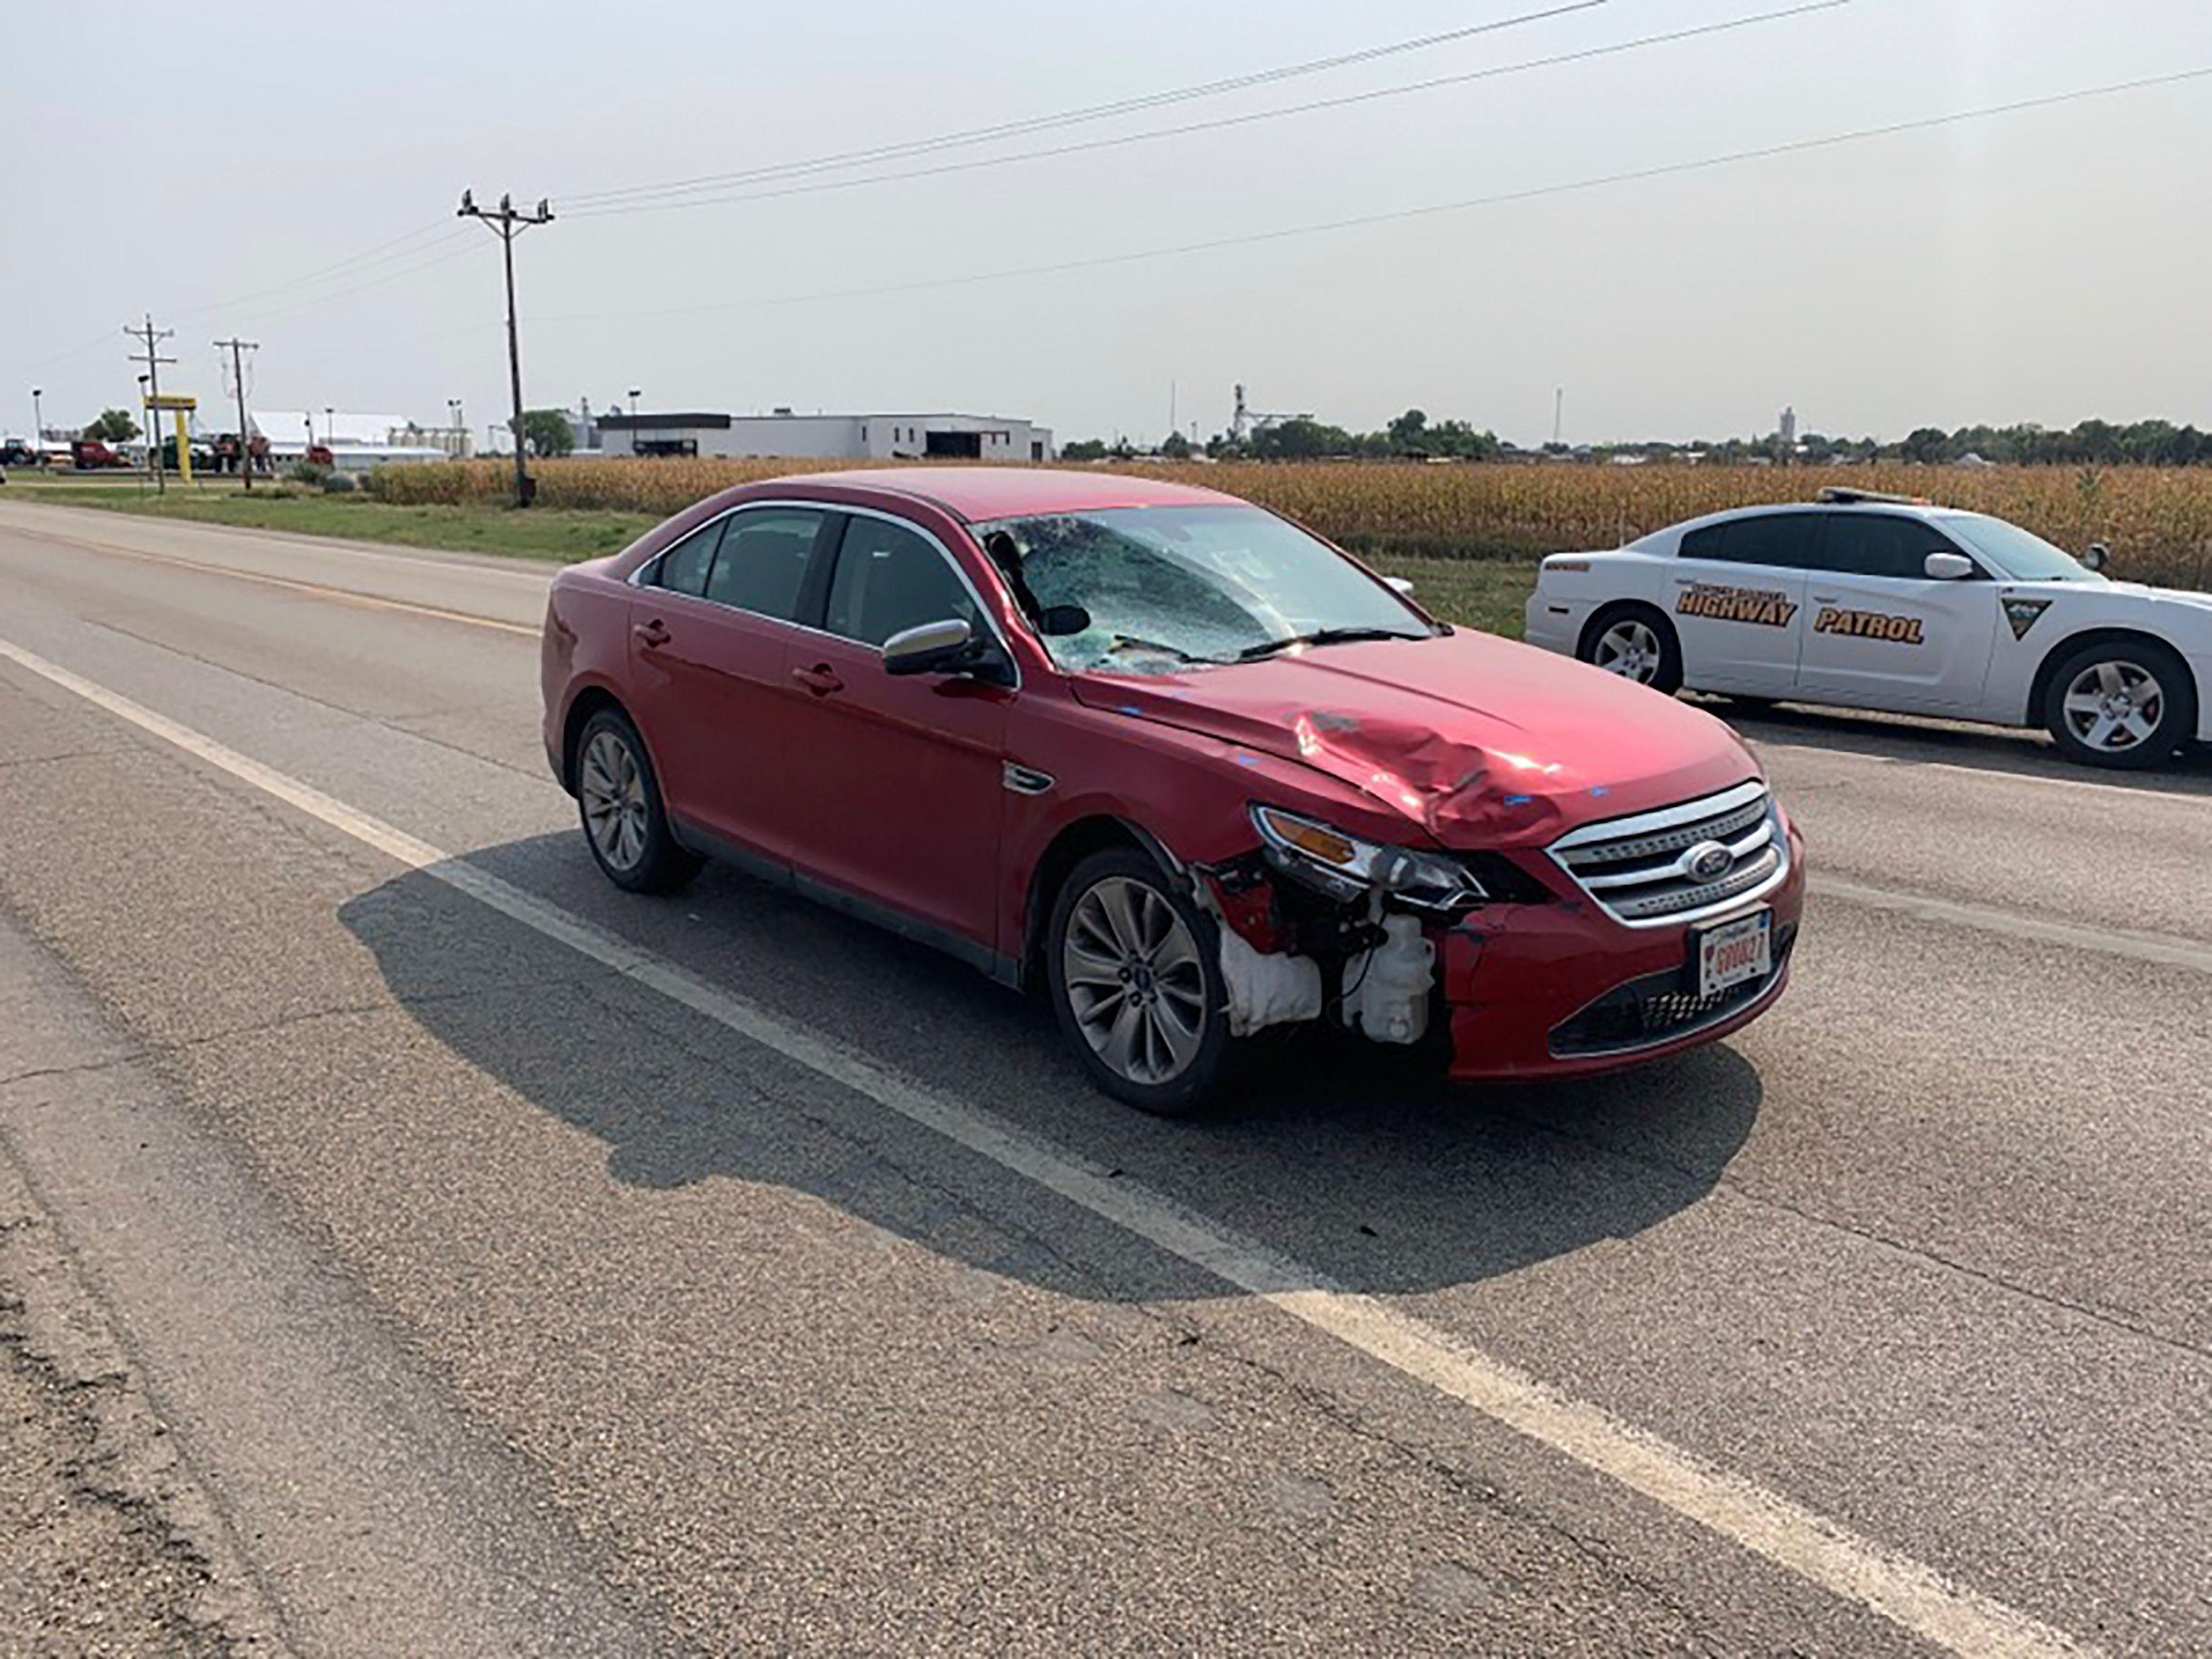 This Sept. 15, 2020 photo provided by the state of South Dakota shows The car that South Dakota Attorney General Jason Ravnsb